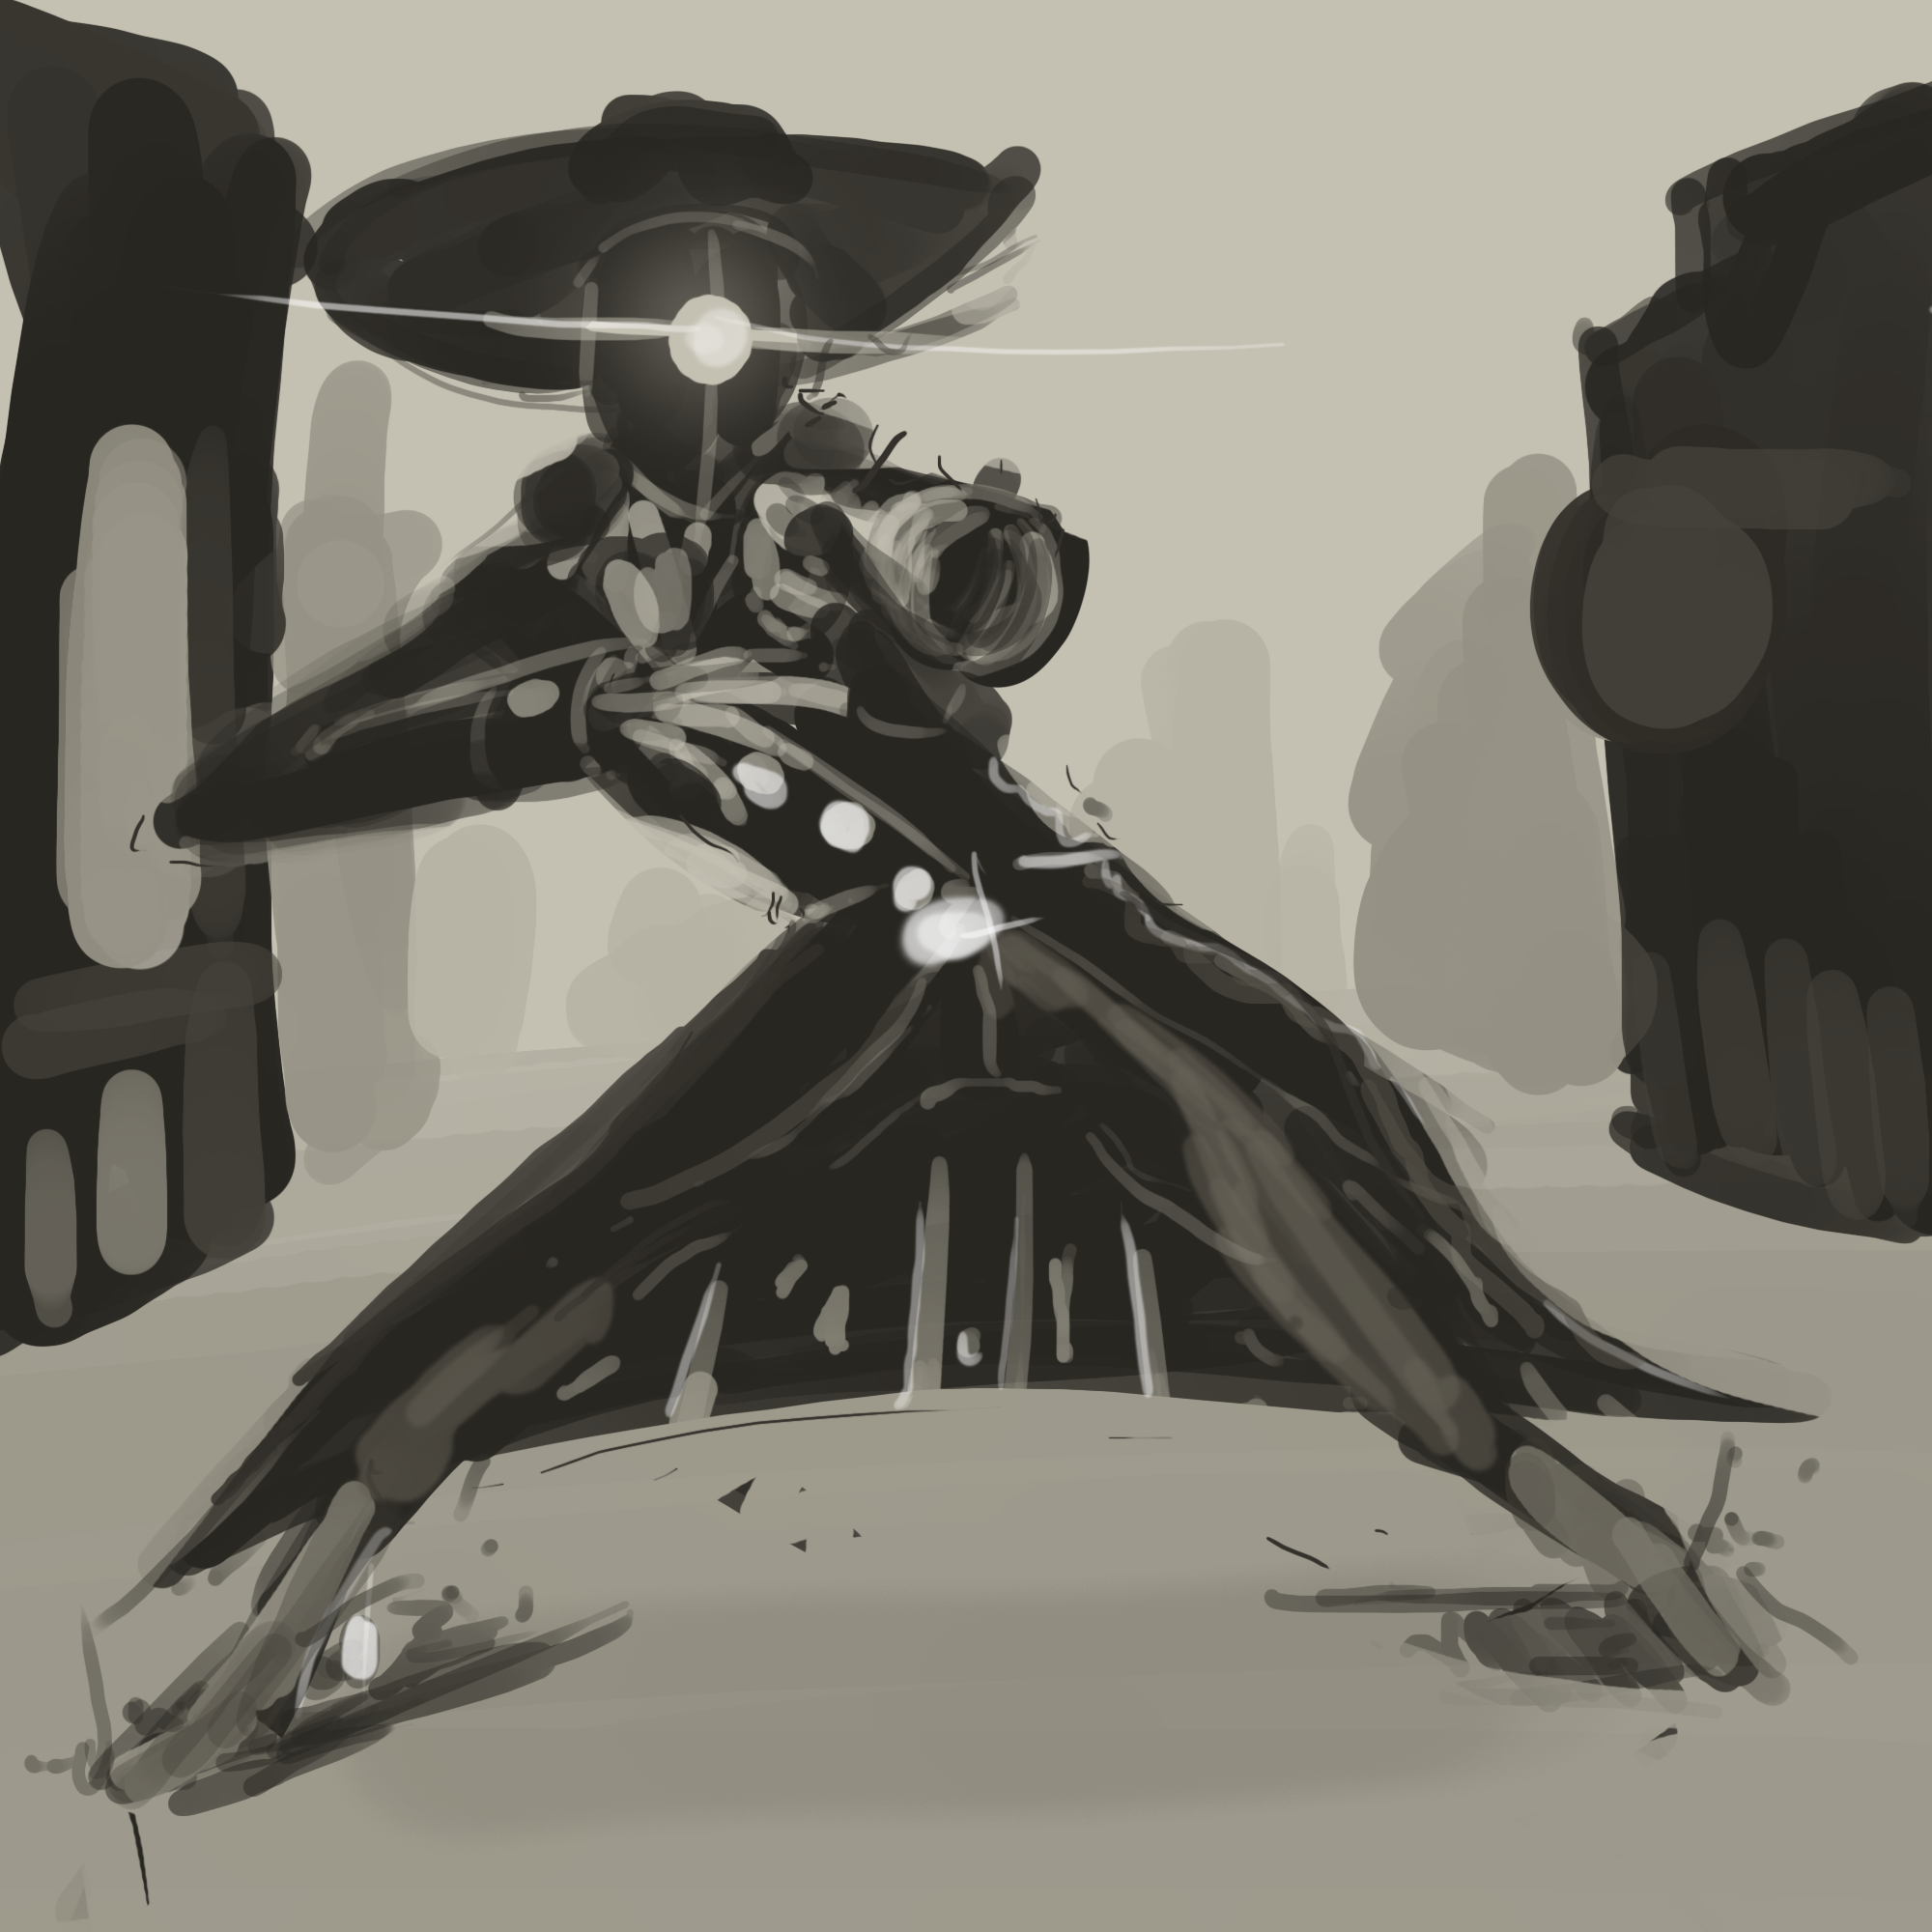 Concept art for the protagonist.